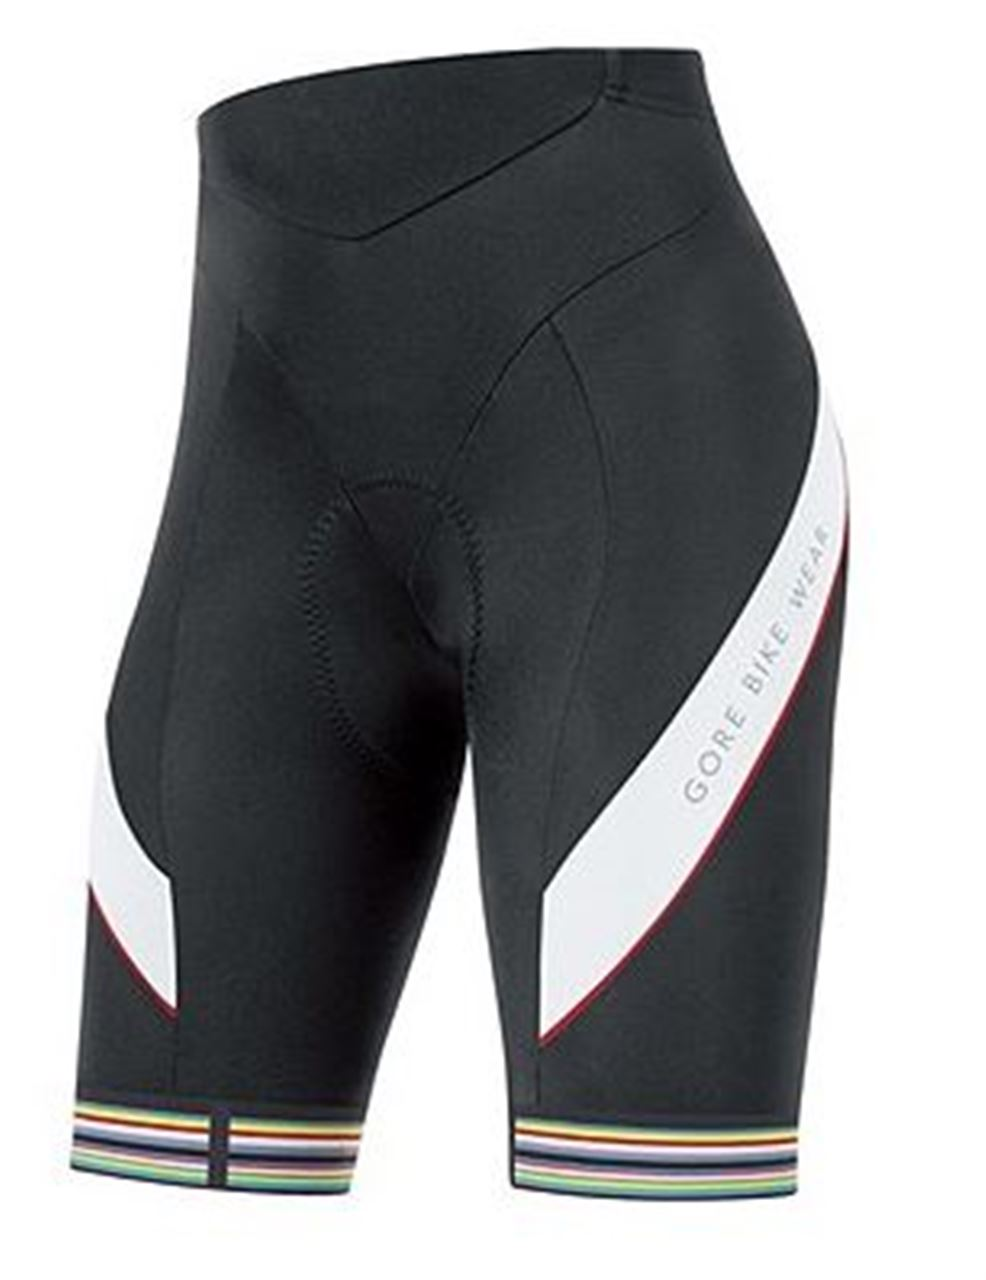 gore power 3.0 lady tights short+